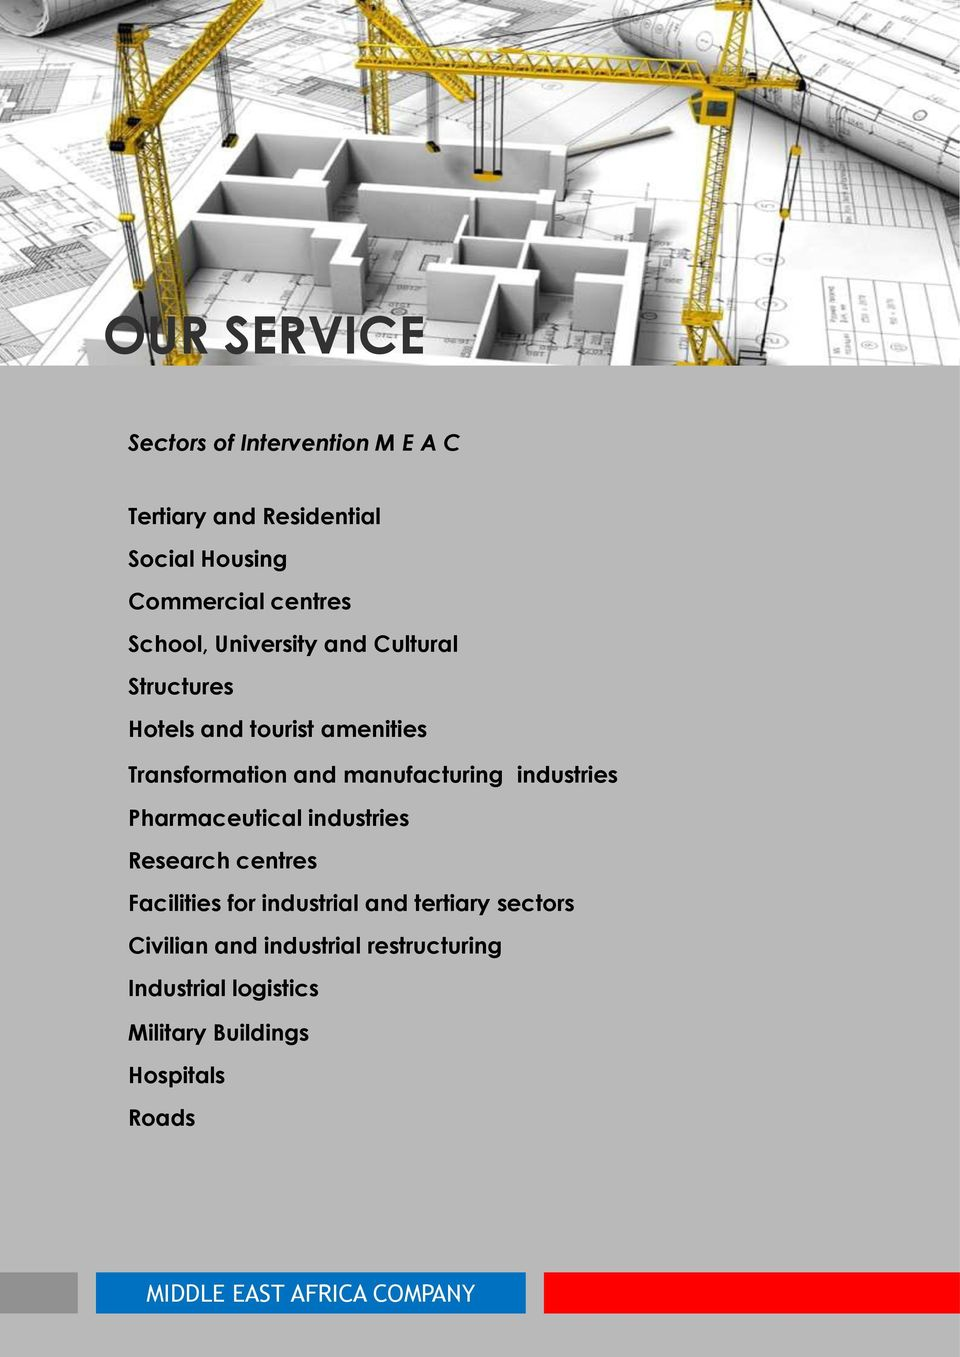 manufacturing industries Pharmaceutical industries Research centres Facilities for industrial and